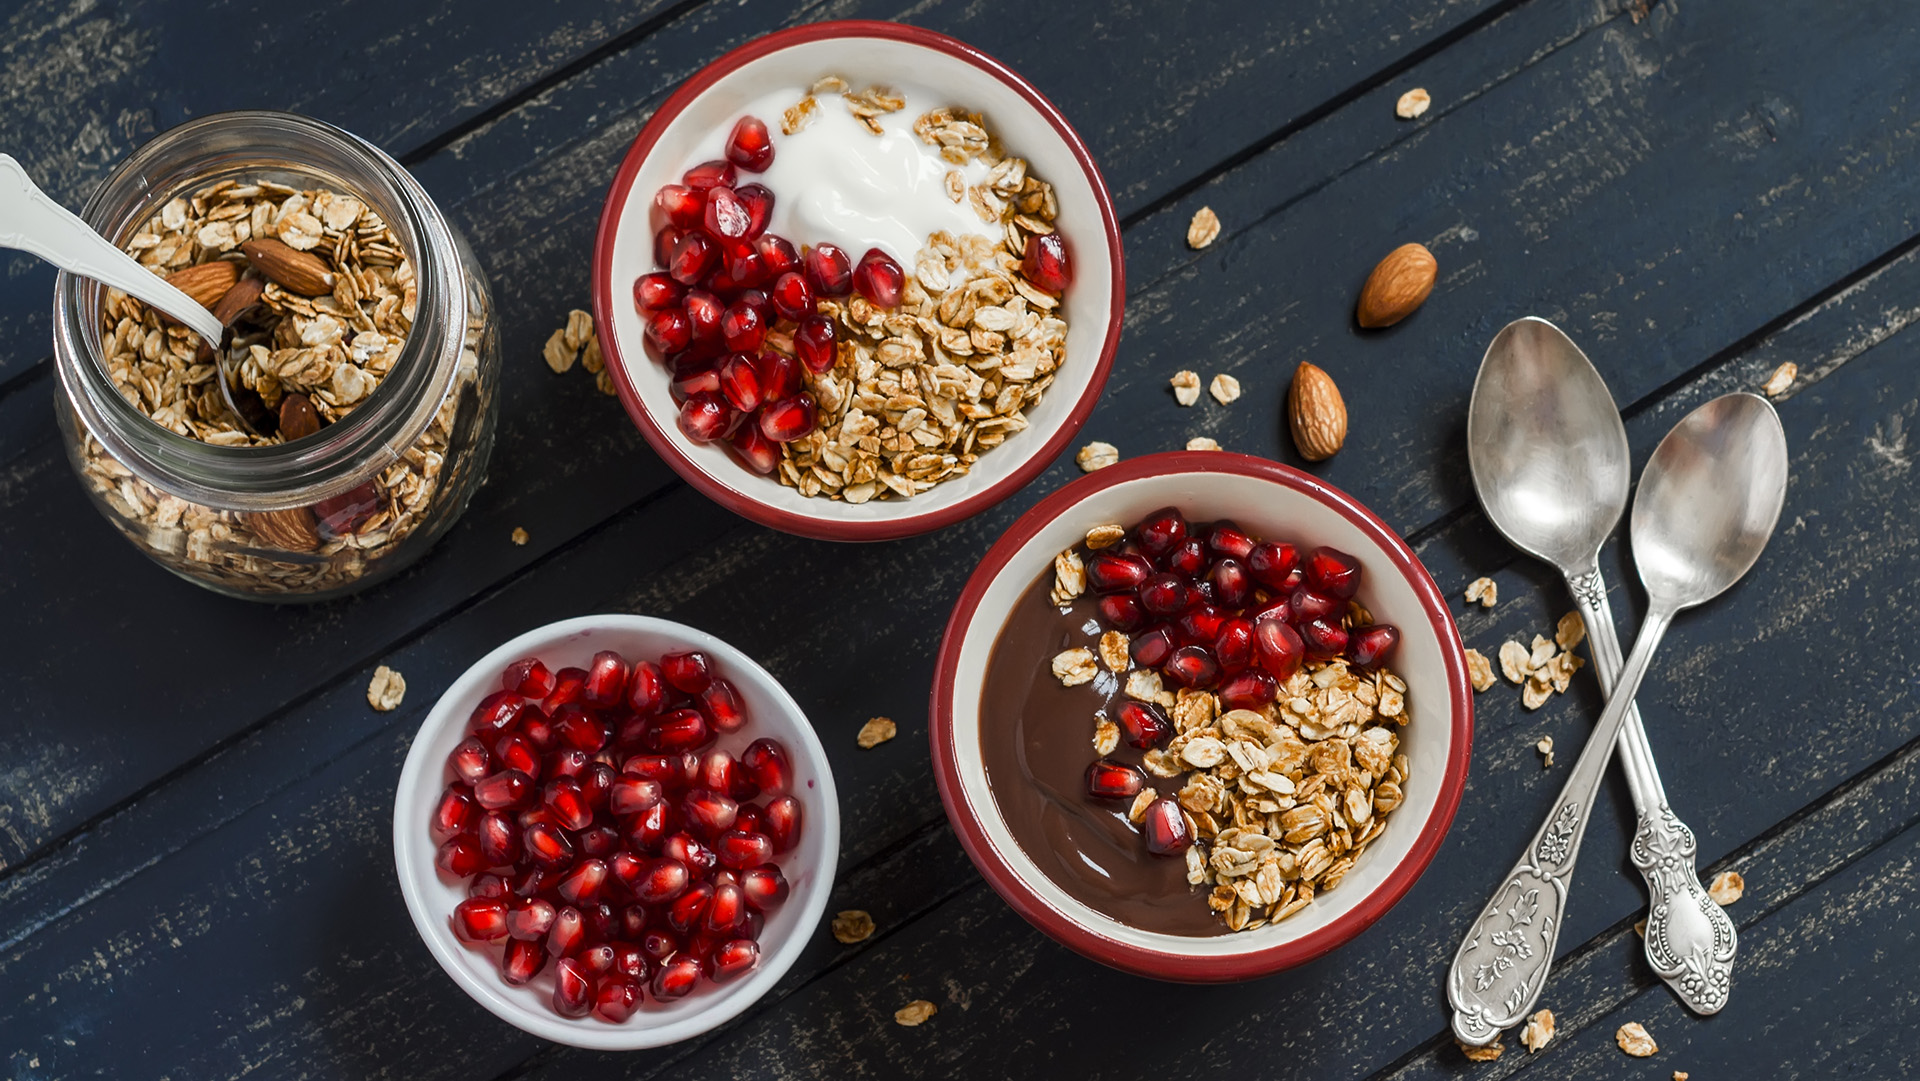 Healthy Breakfast - yogurt with homemade granola and pomegranate on a dark wooden board.